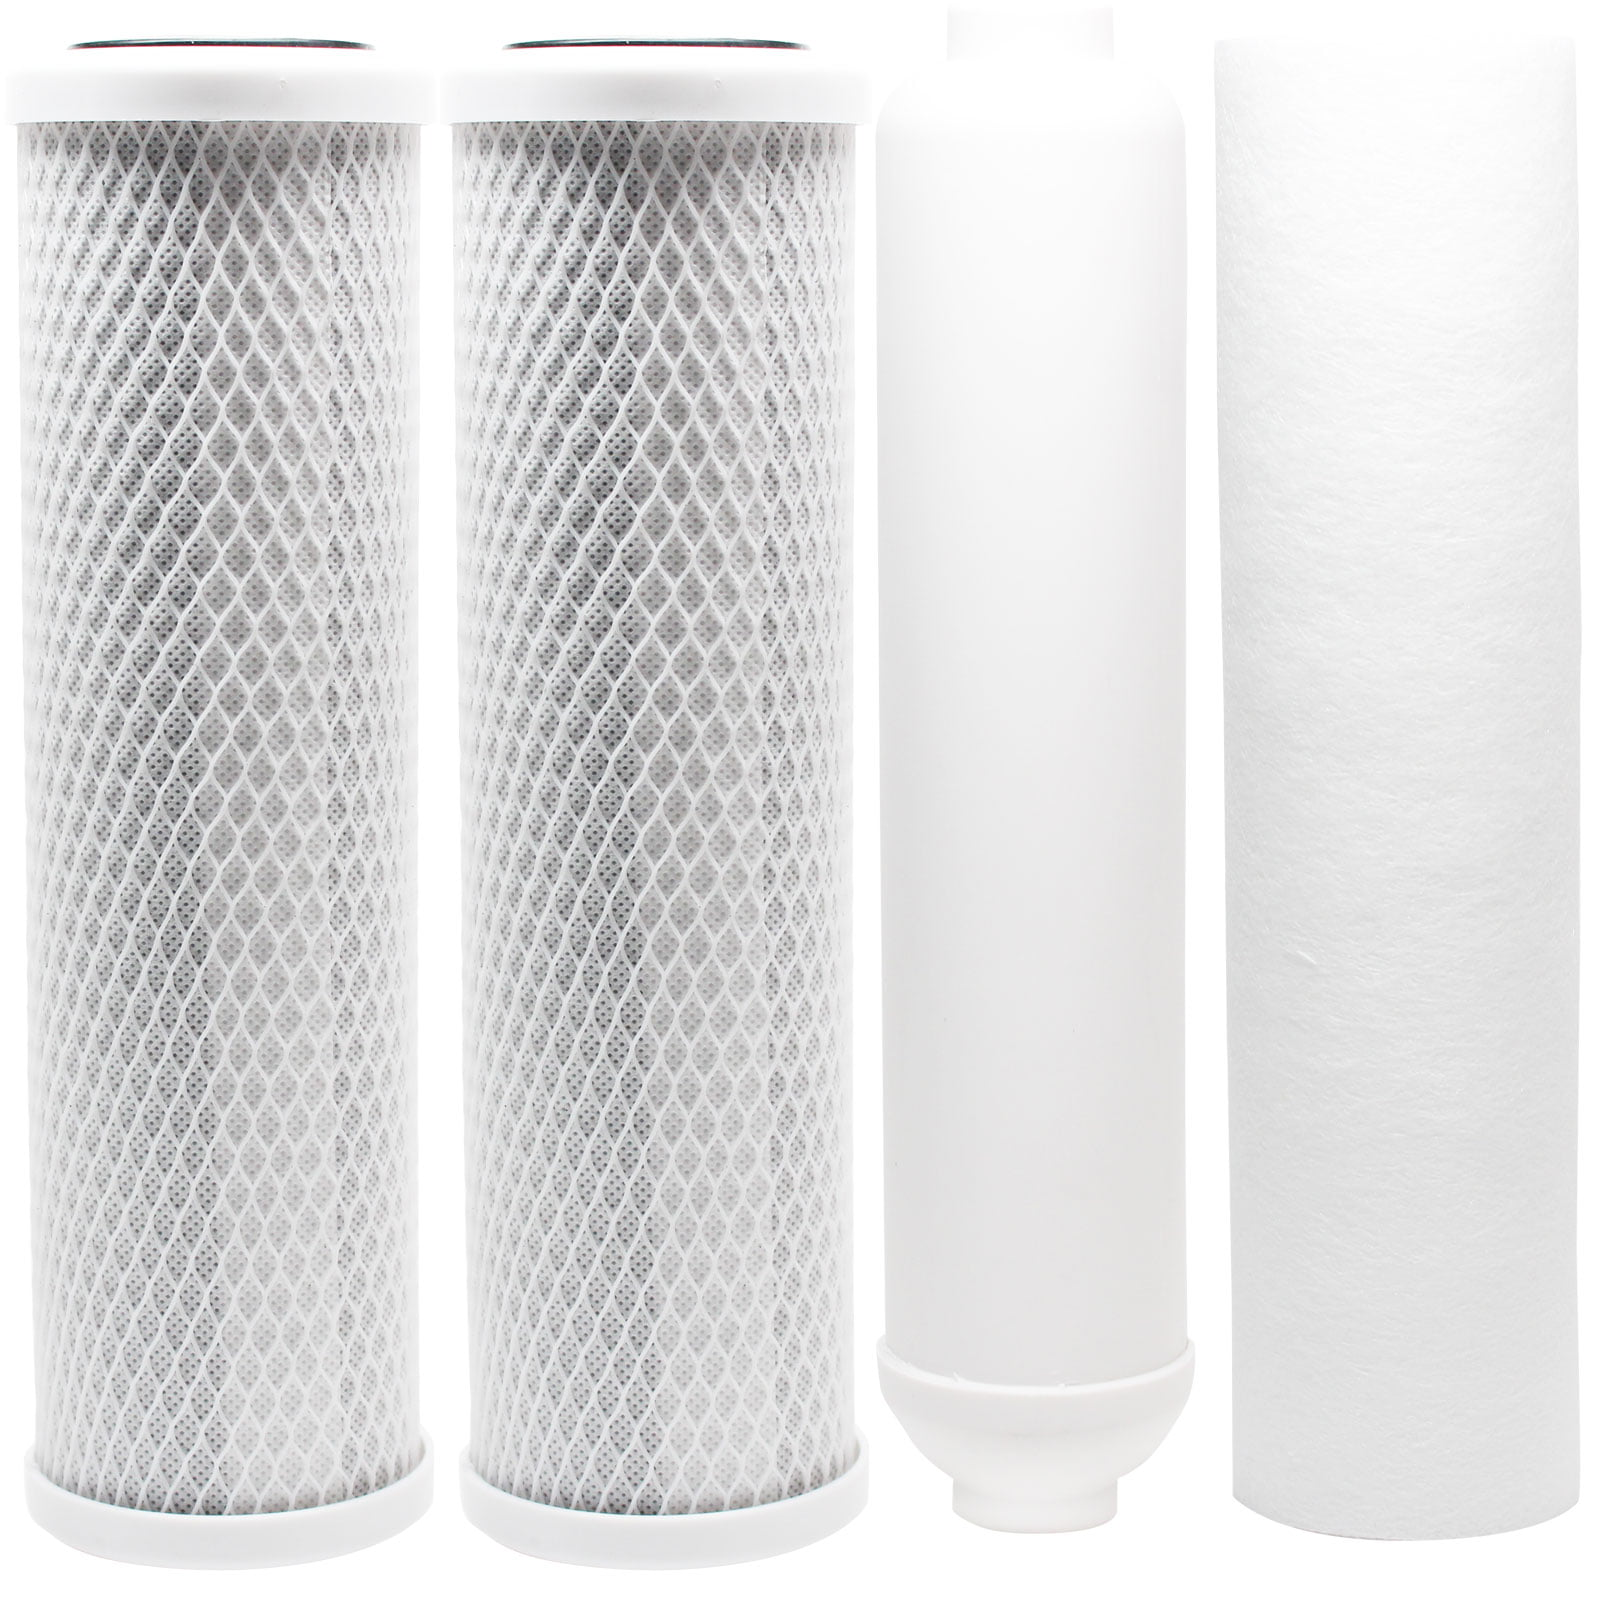 Denali Pure Brand Universal 10 inch Filter Compatible with iSpring 123Filter Portable Clear Single-Stage Countertop System #CKC1C 7-Pack Replacement for iSpring CKC1C Activated Carbon Block Filter